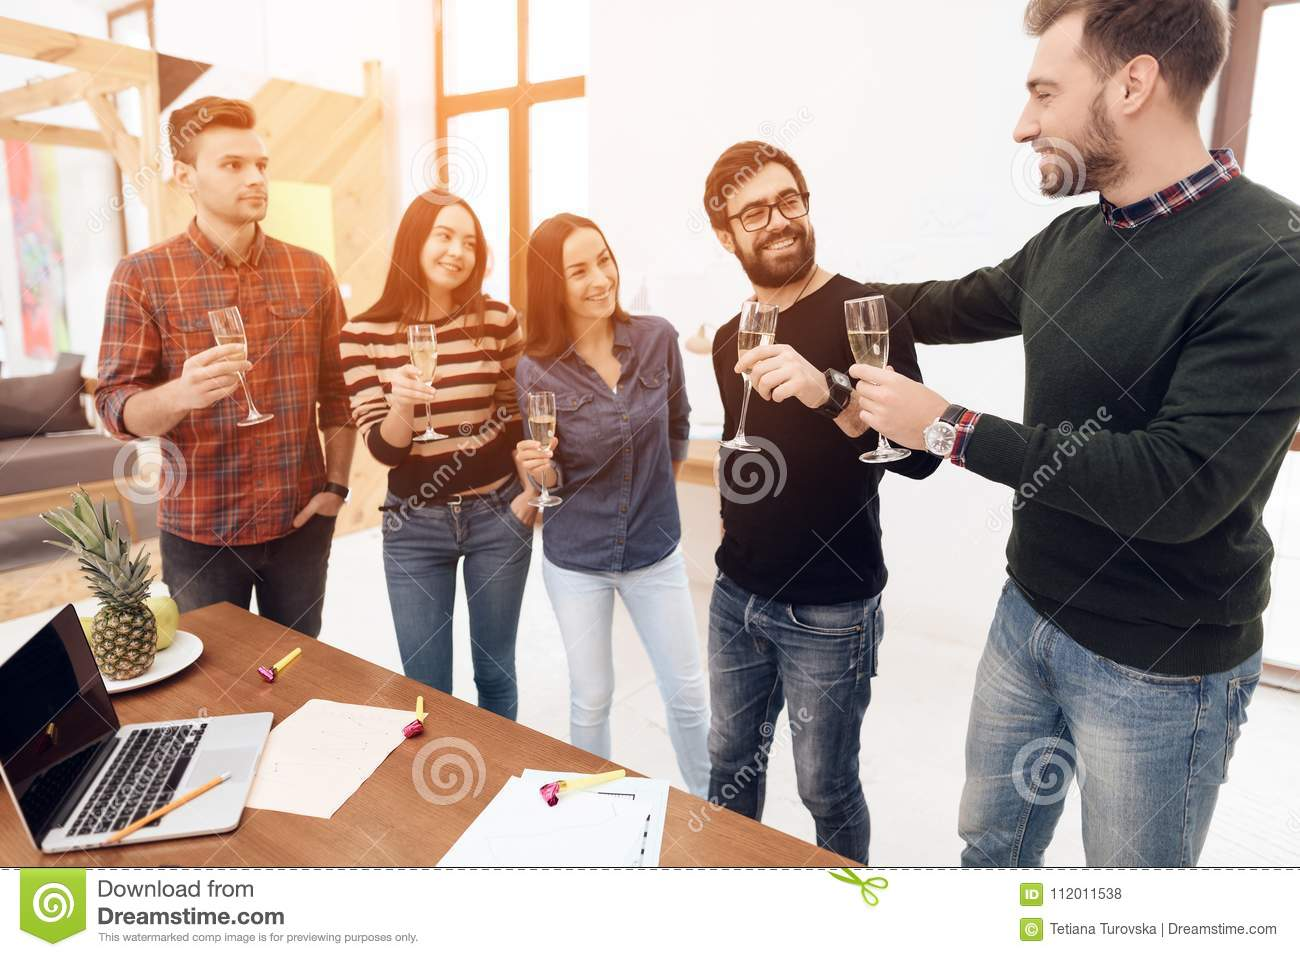 A group of young office workers celebrating.